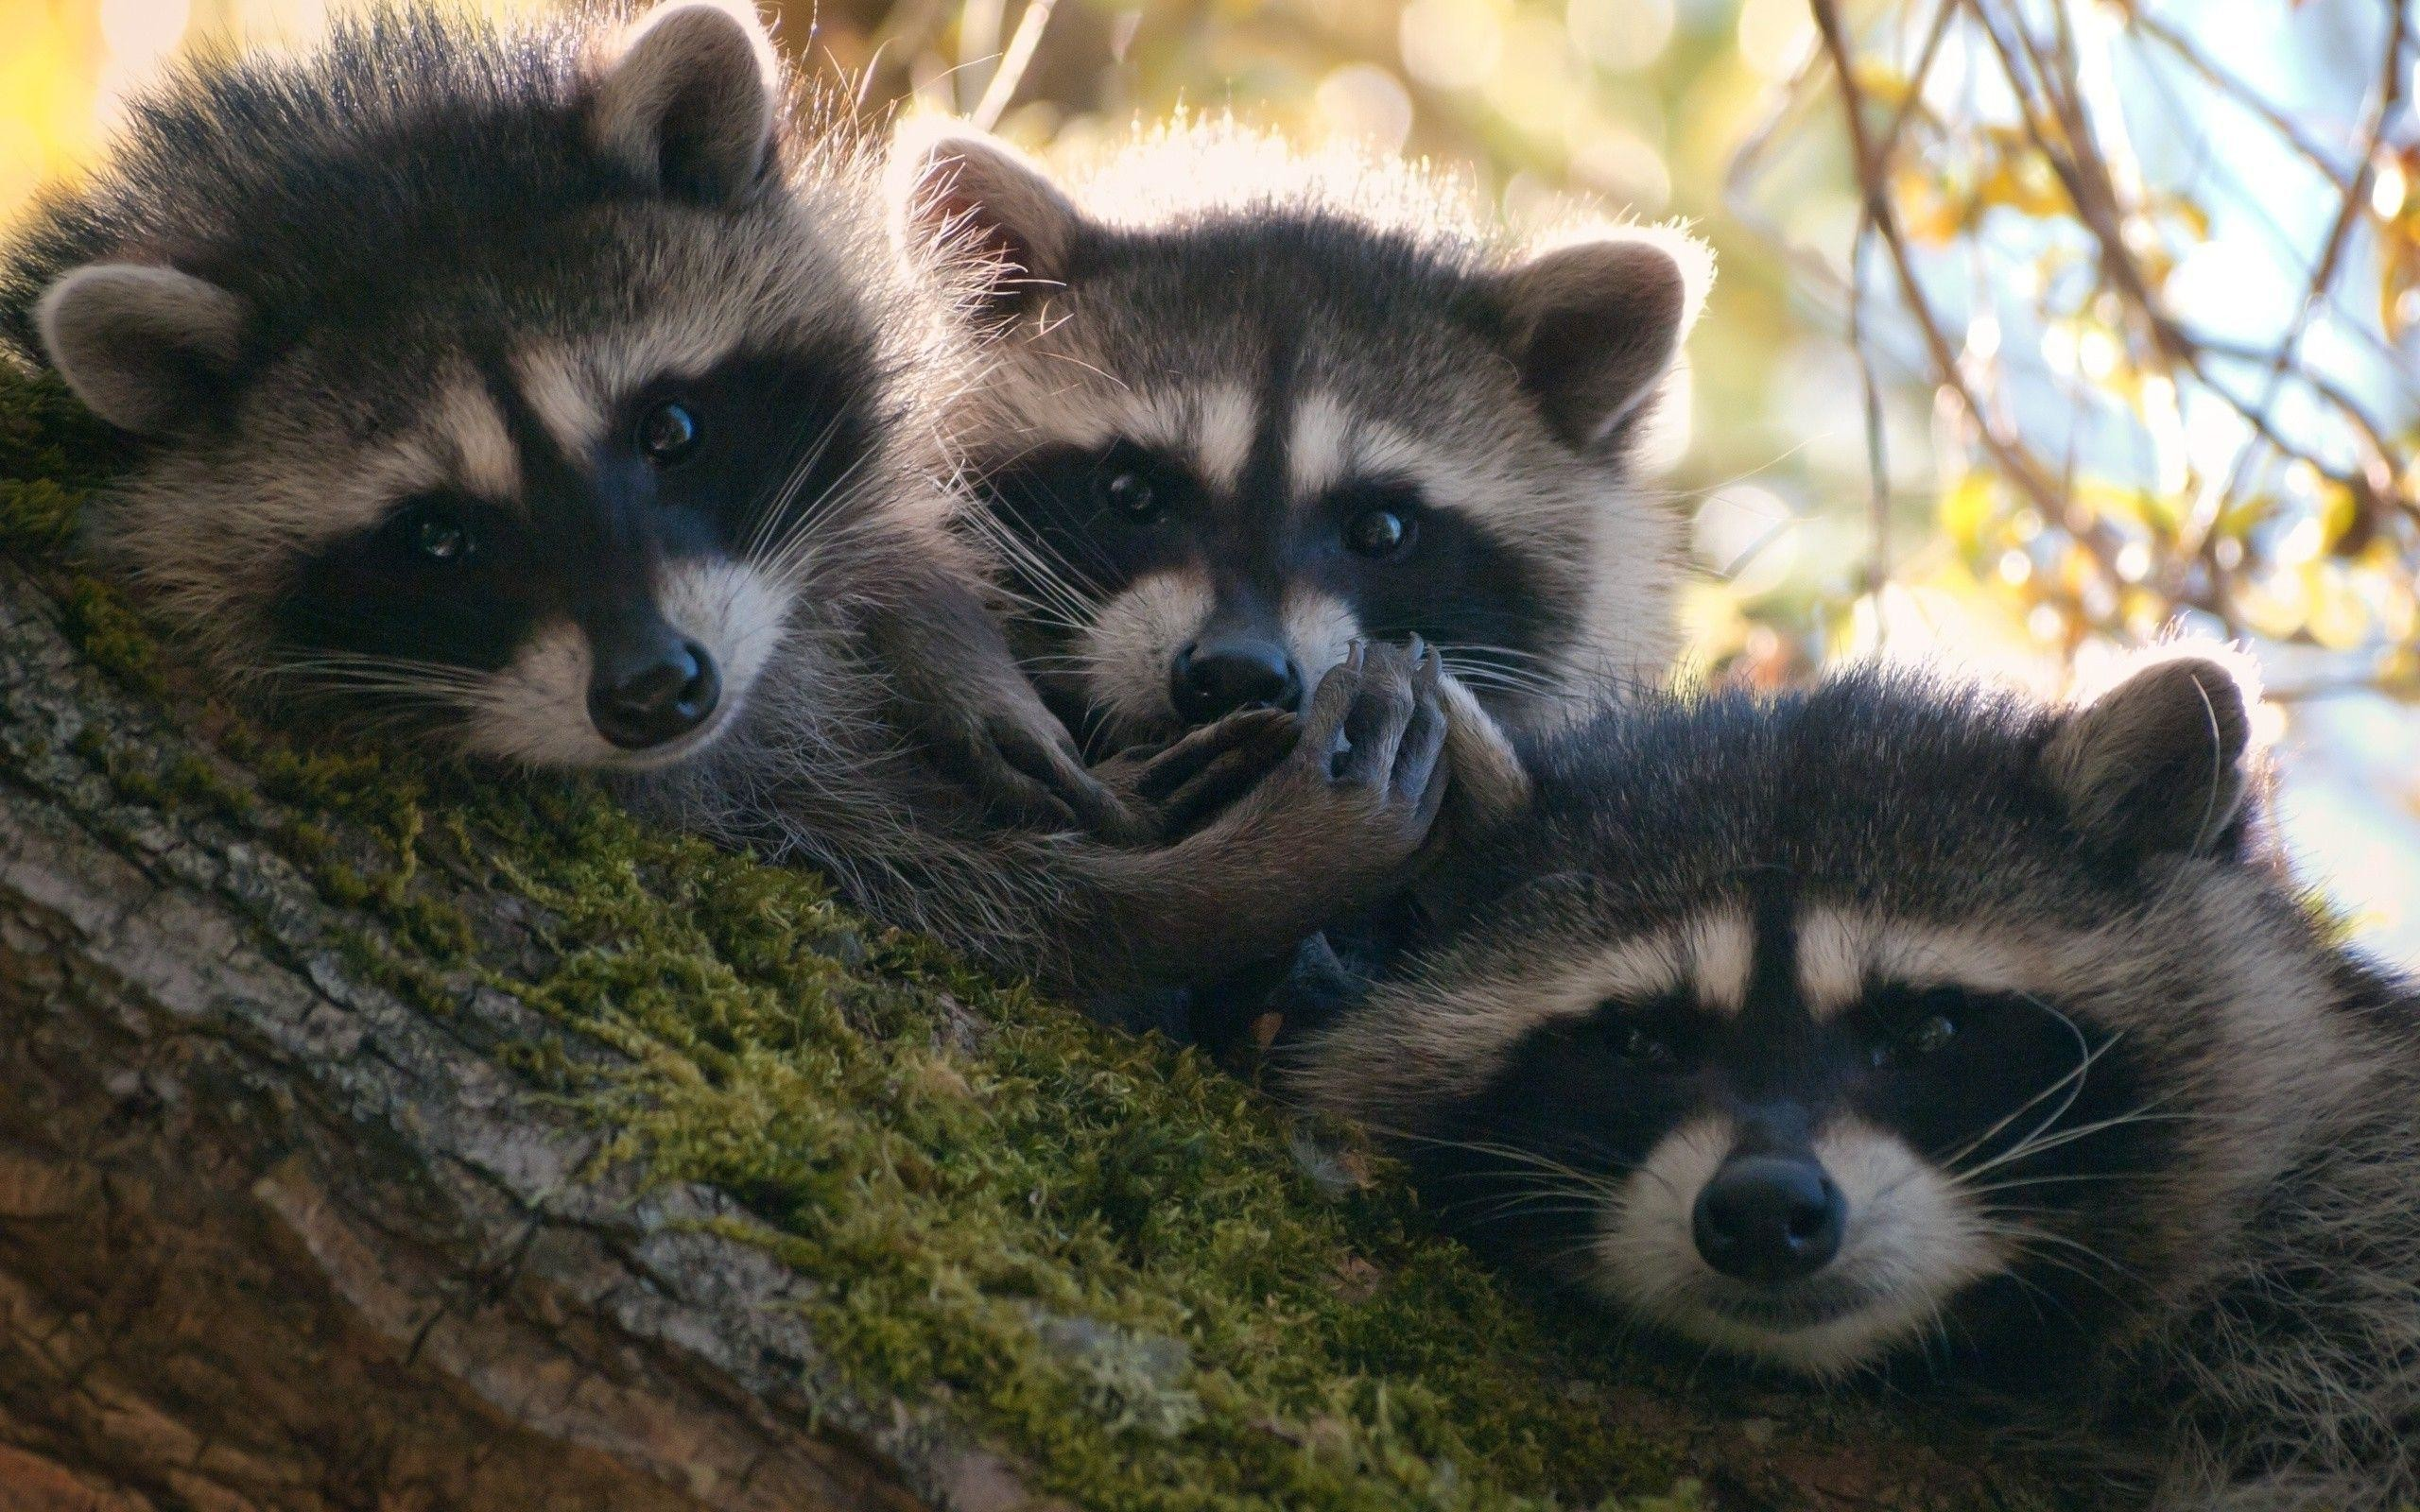 2560x1600 raccoons images Raccoons HD wallpaper and background photos